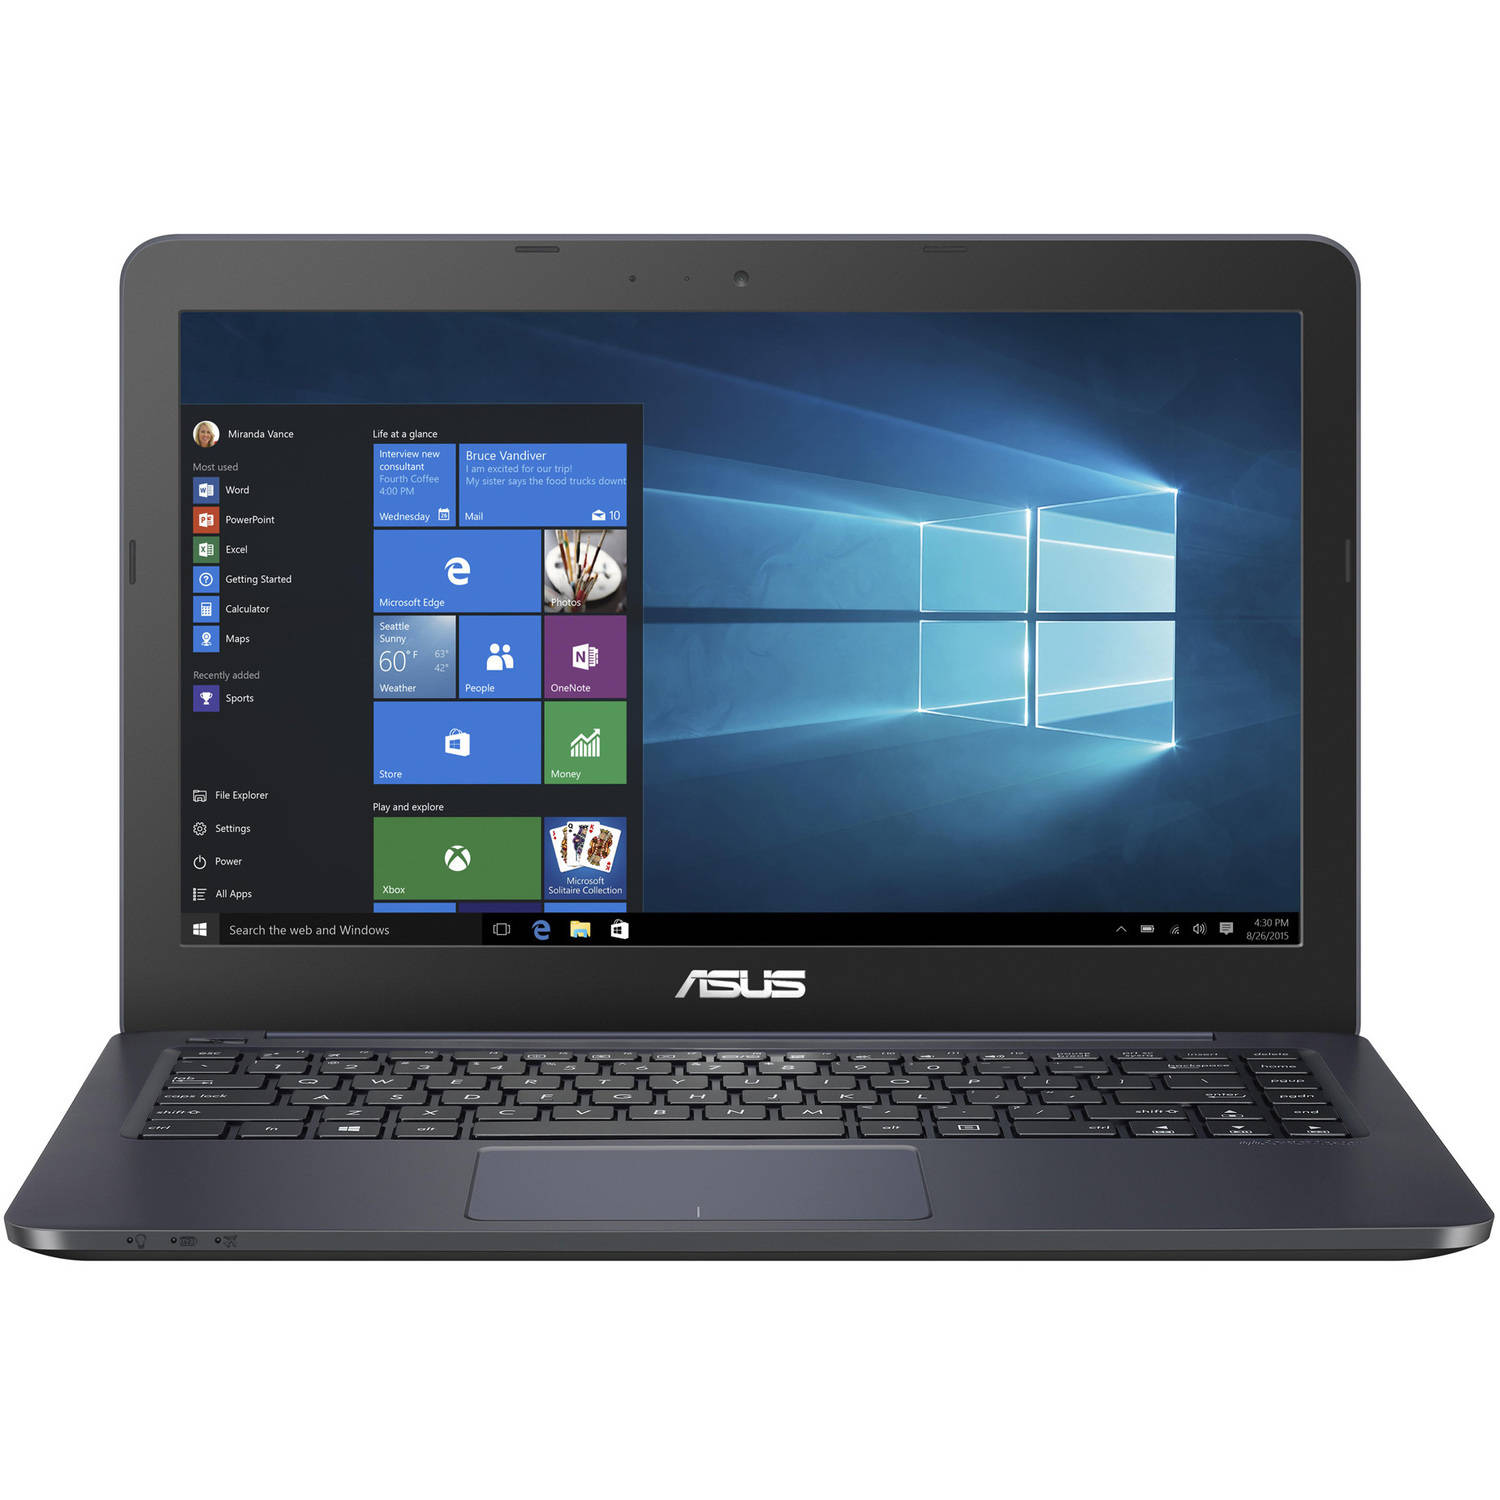 "Click here to buy ASUS L402 14"" Laptop, Windows 10, Office 365 Personal 1-year included, Intel Celeron N3060 Processor, 4GB RAM, 32GB... by ASUS."